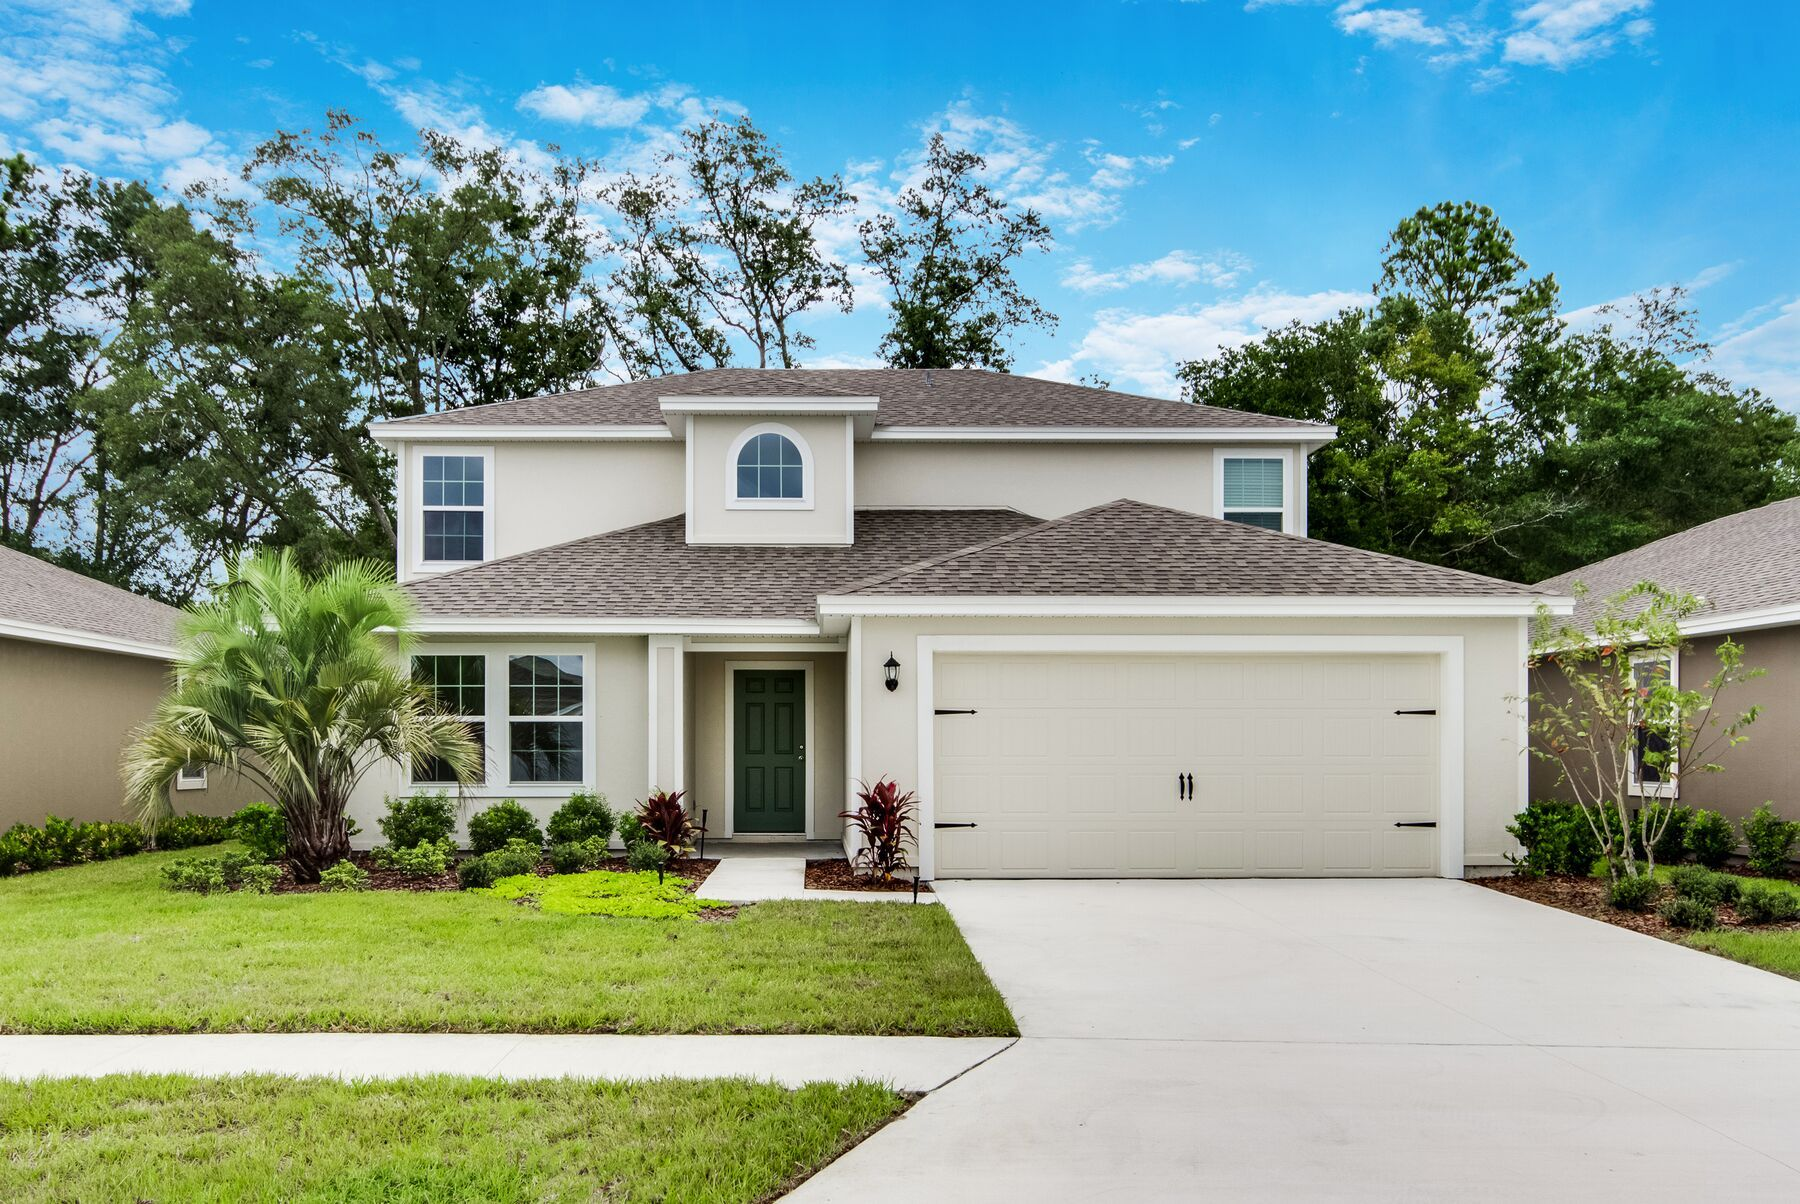 The Four Winds by LGI Homes:Spacious new home with plenty of entertainment space!